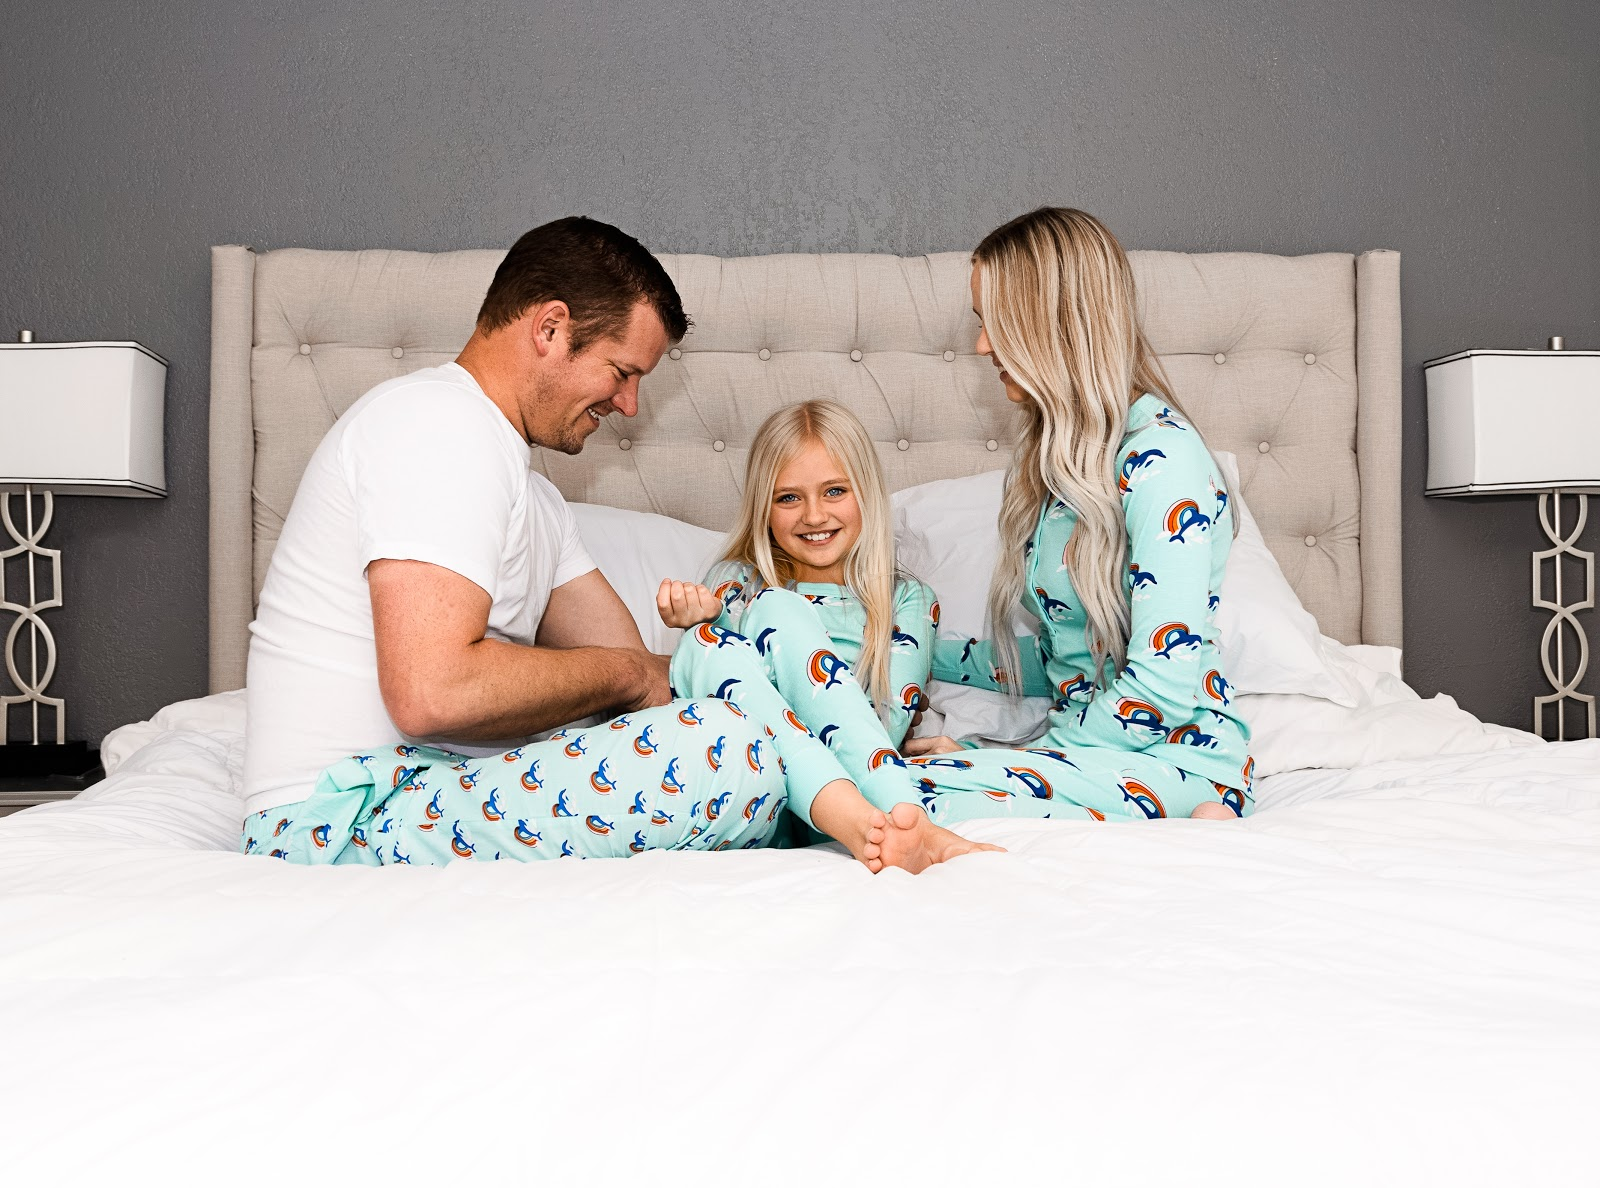 Fun Family Pajamas in the Spring!  matching twinning jams pjs footie pajamas family time matching family pajamas love bedroom bed photoshoot family photoshoot idea pajamas